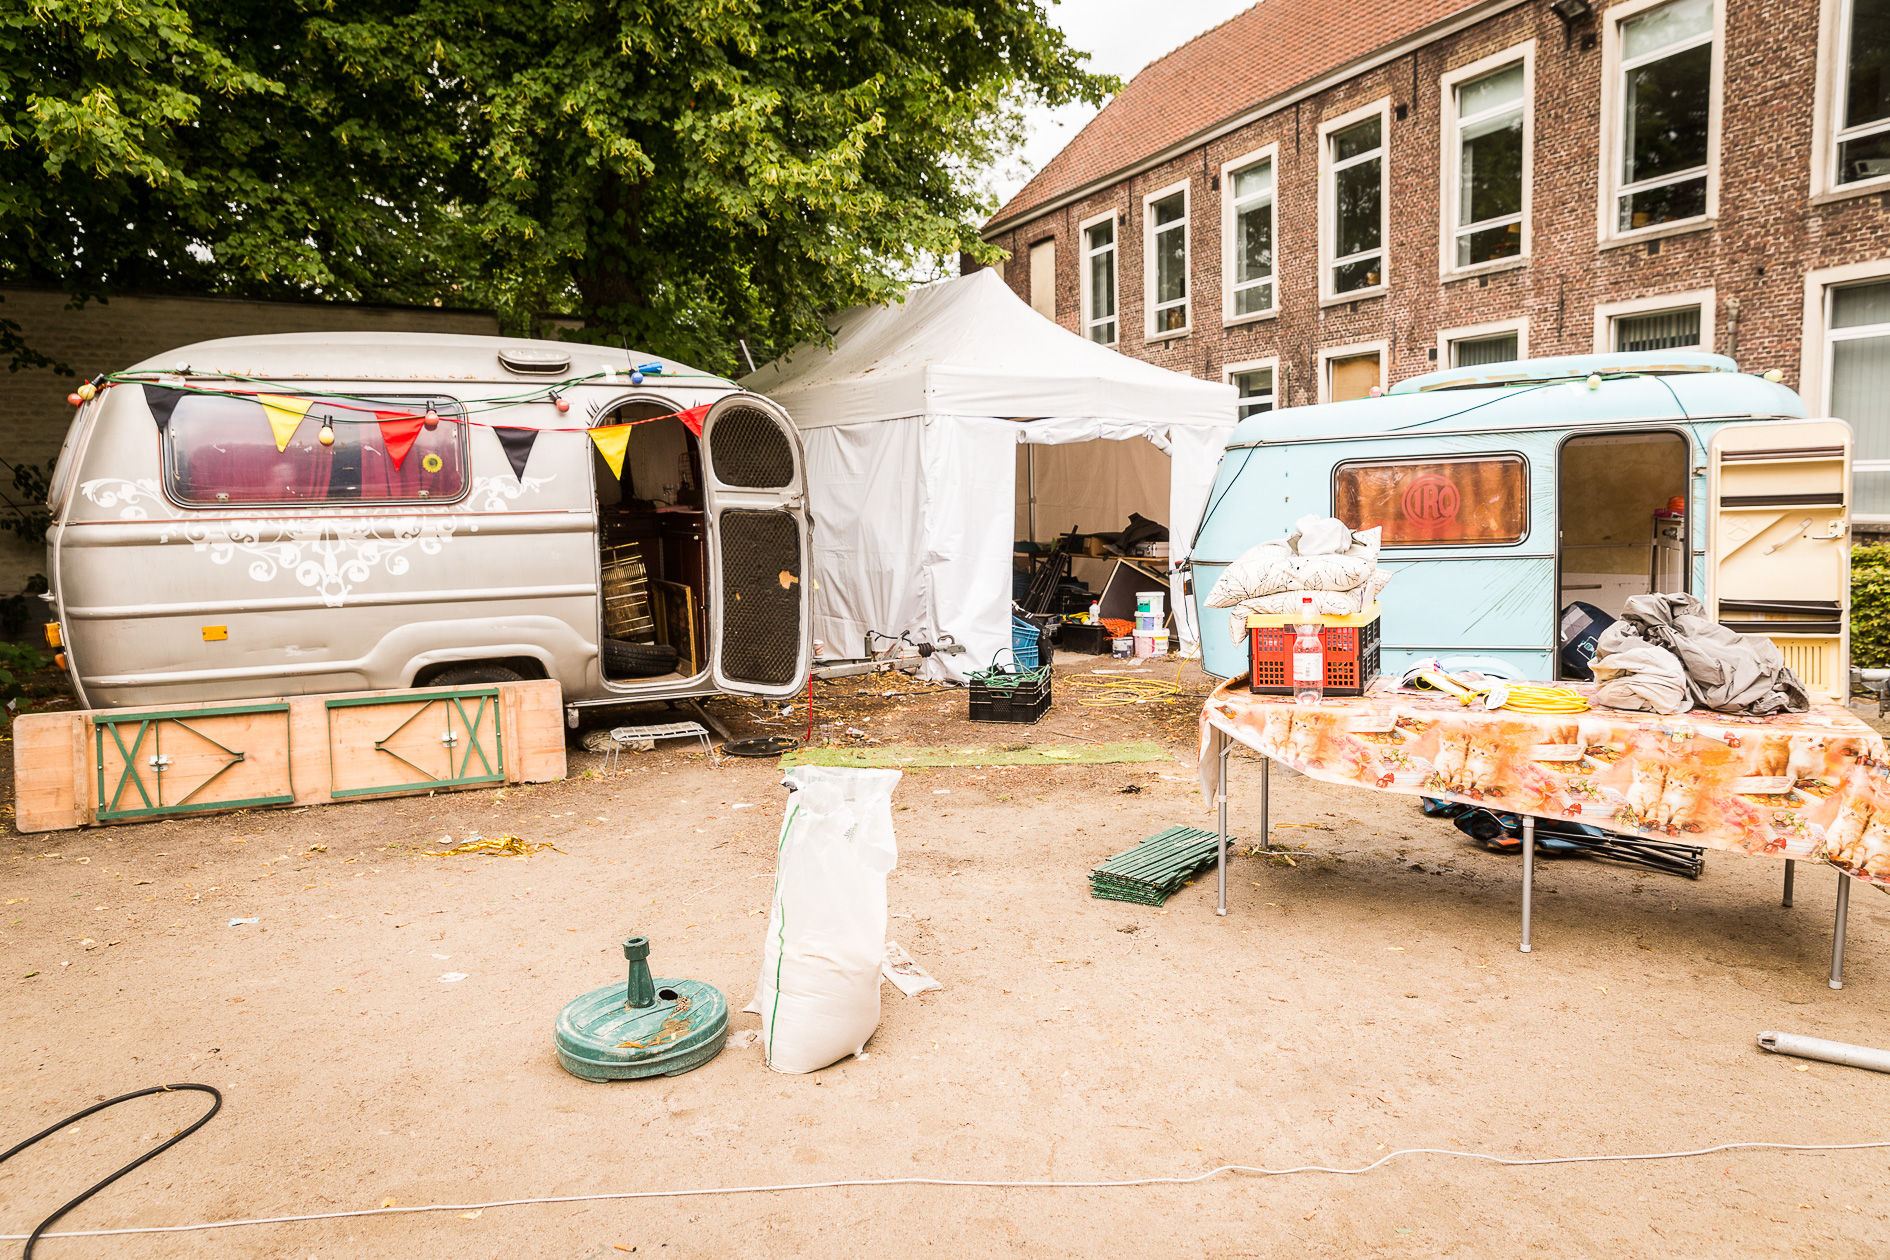 Gentse Feesten- The day after